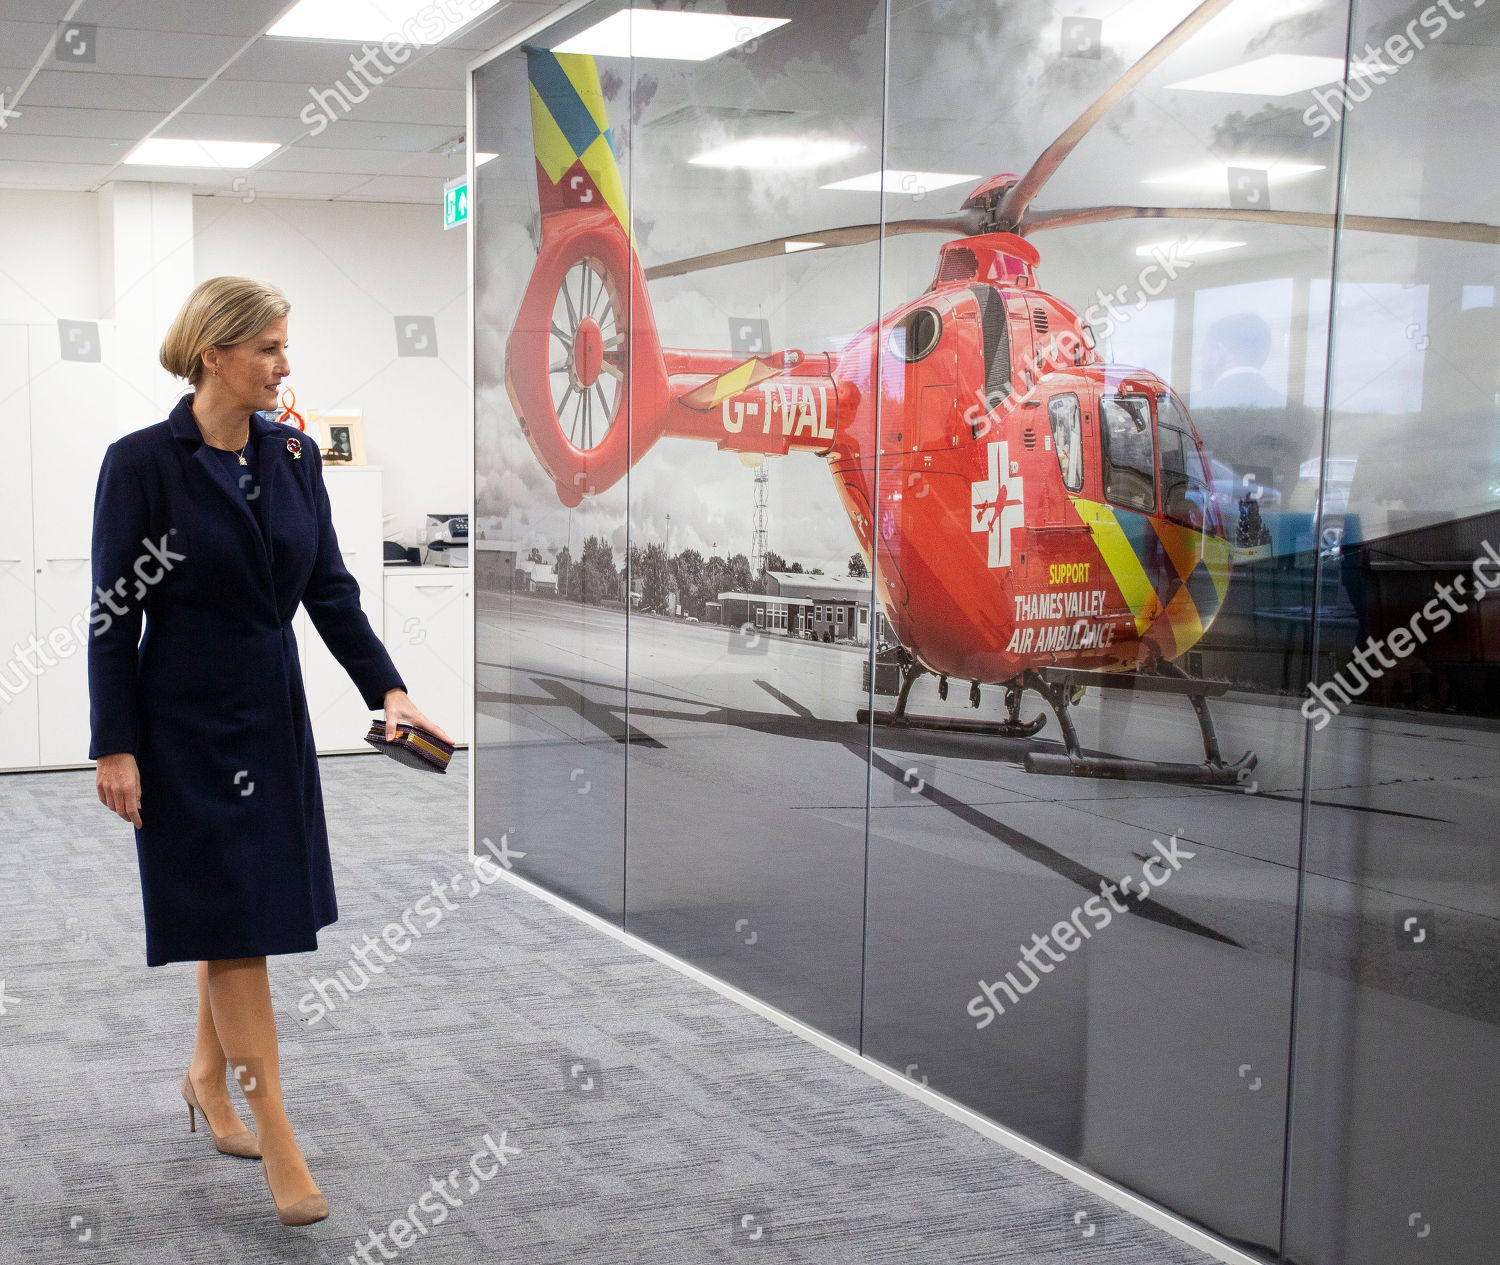 sophie-countess-of-wessex-opens-the-thames-valley-air-ambulance-headquarters-stokenchurch-buckinghamshire-uk-shutterstock-editorial-9968468s.jpg